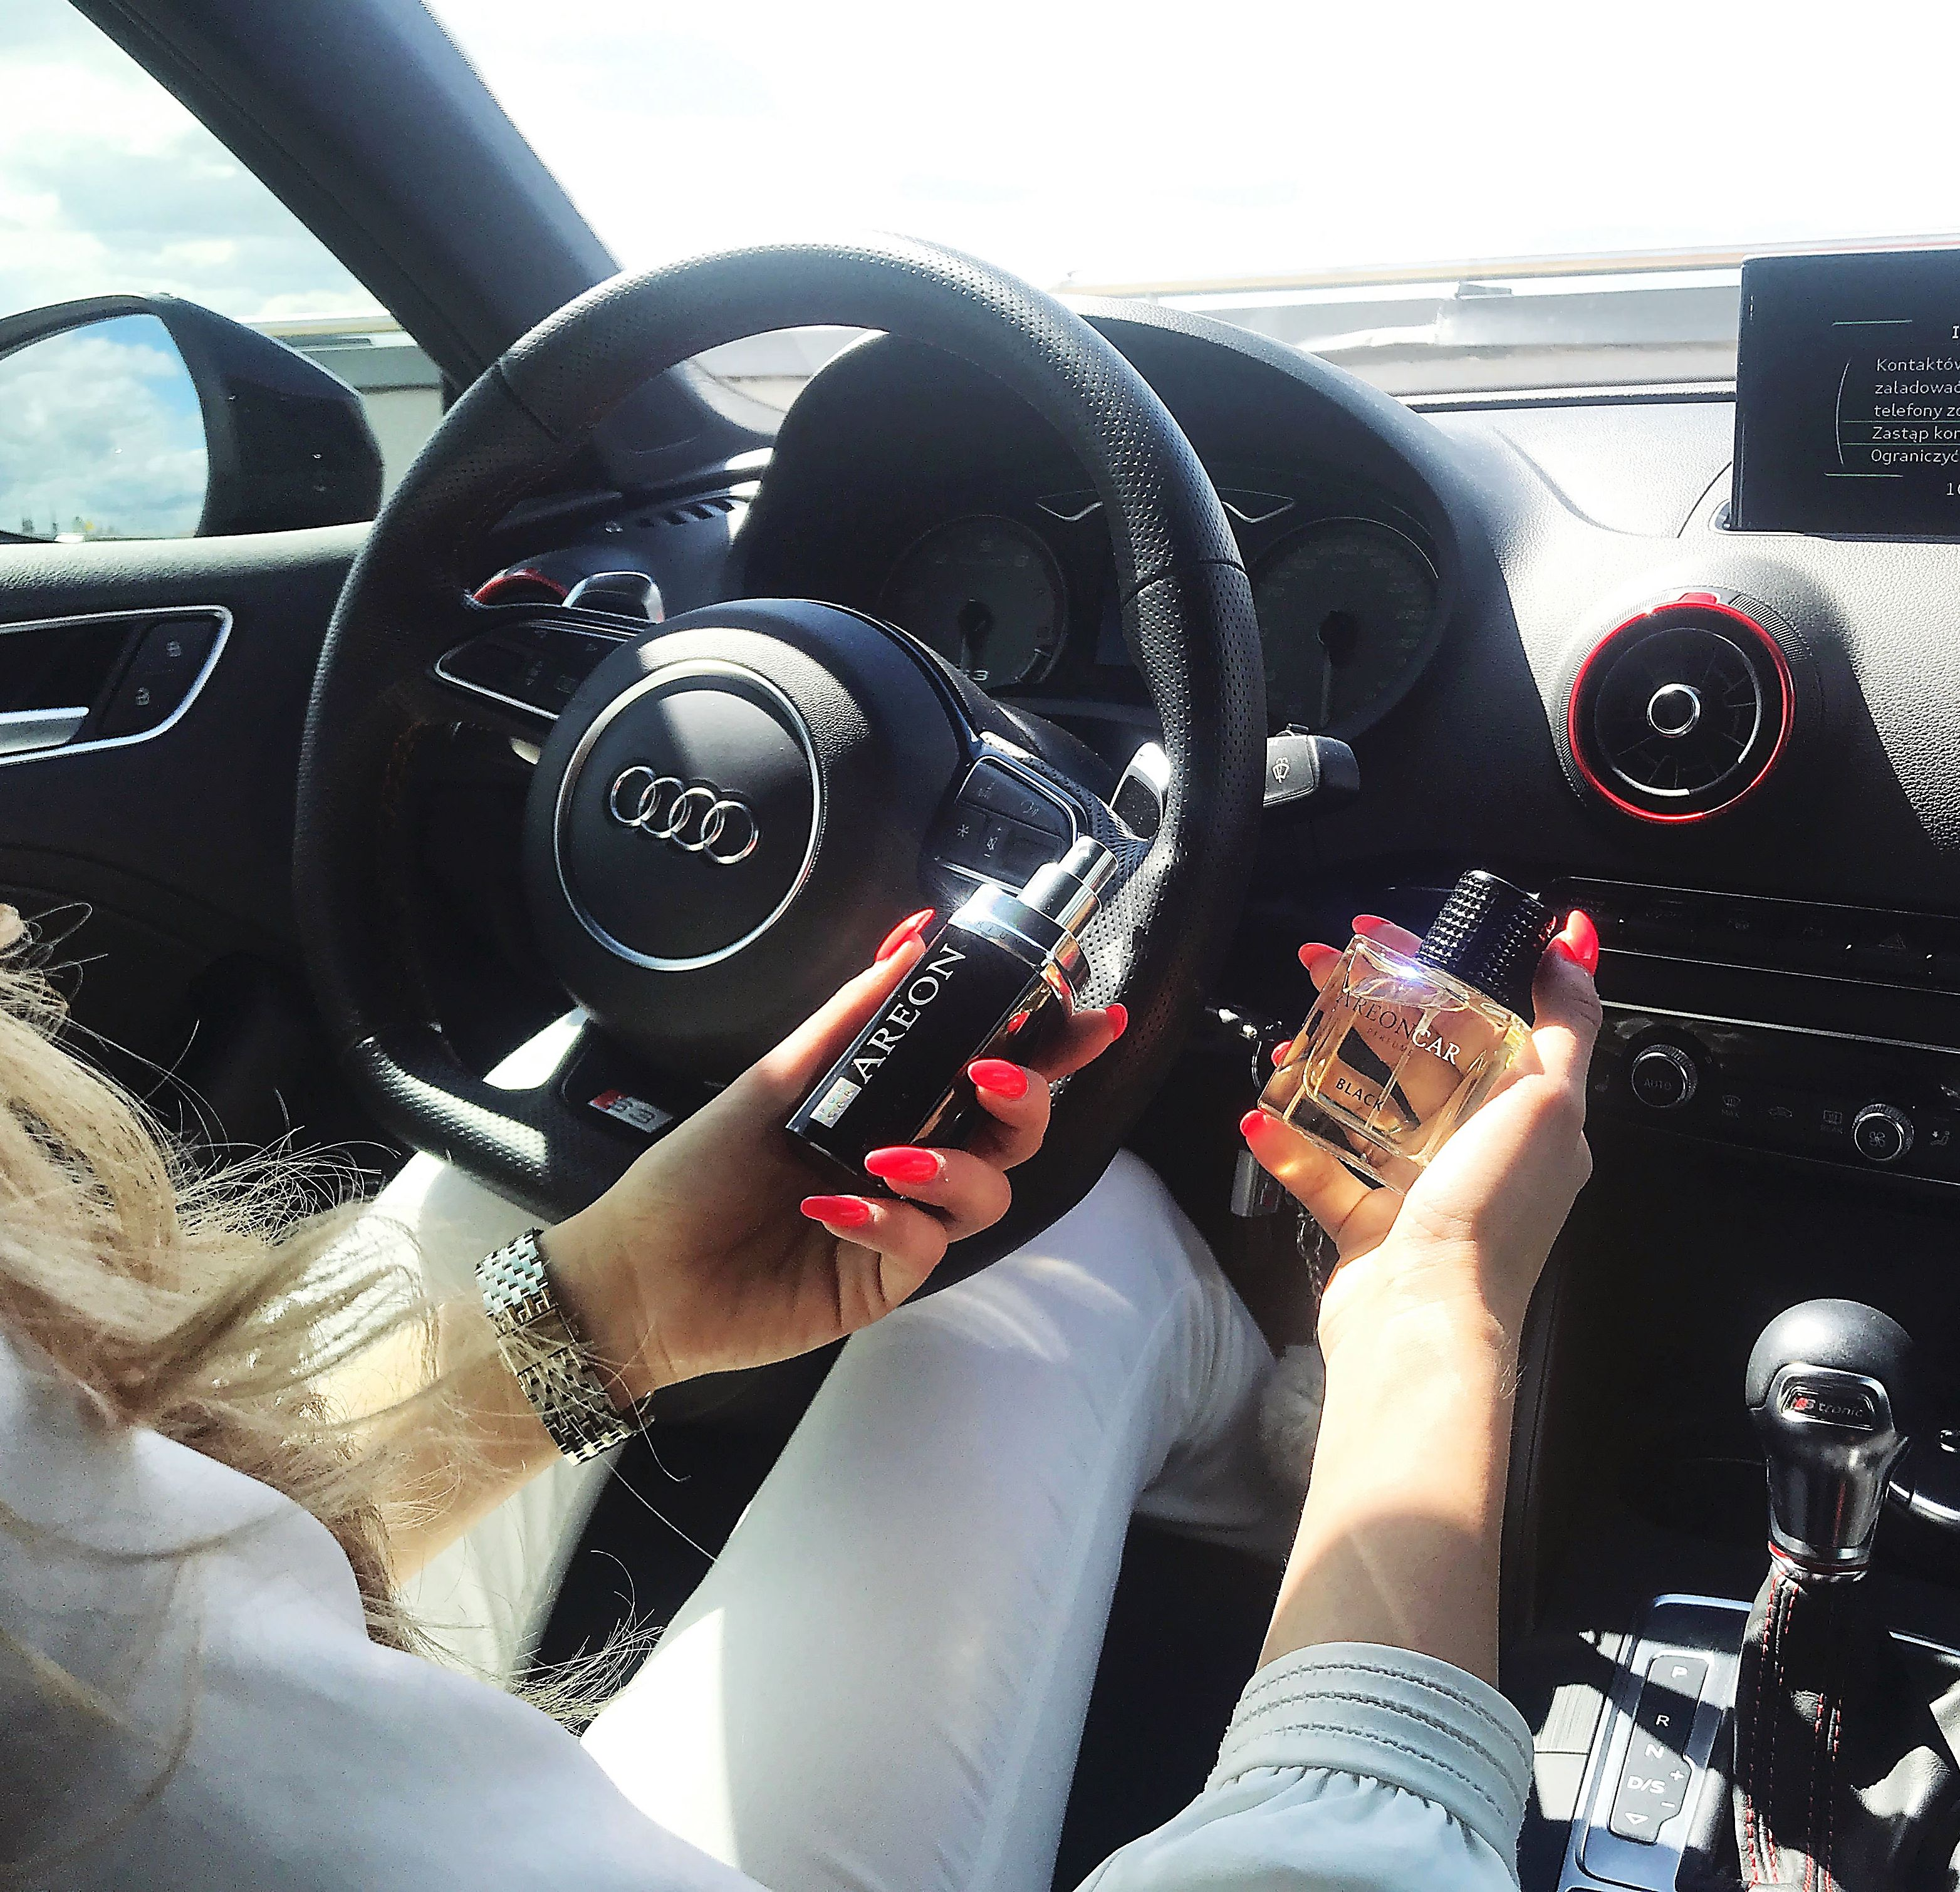 Spdrives Women Specialist Of Audi And Car Lover With Areon Car